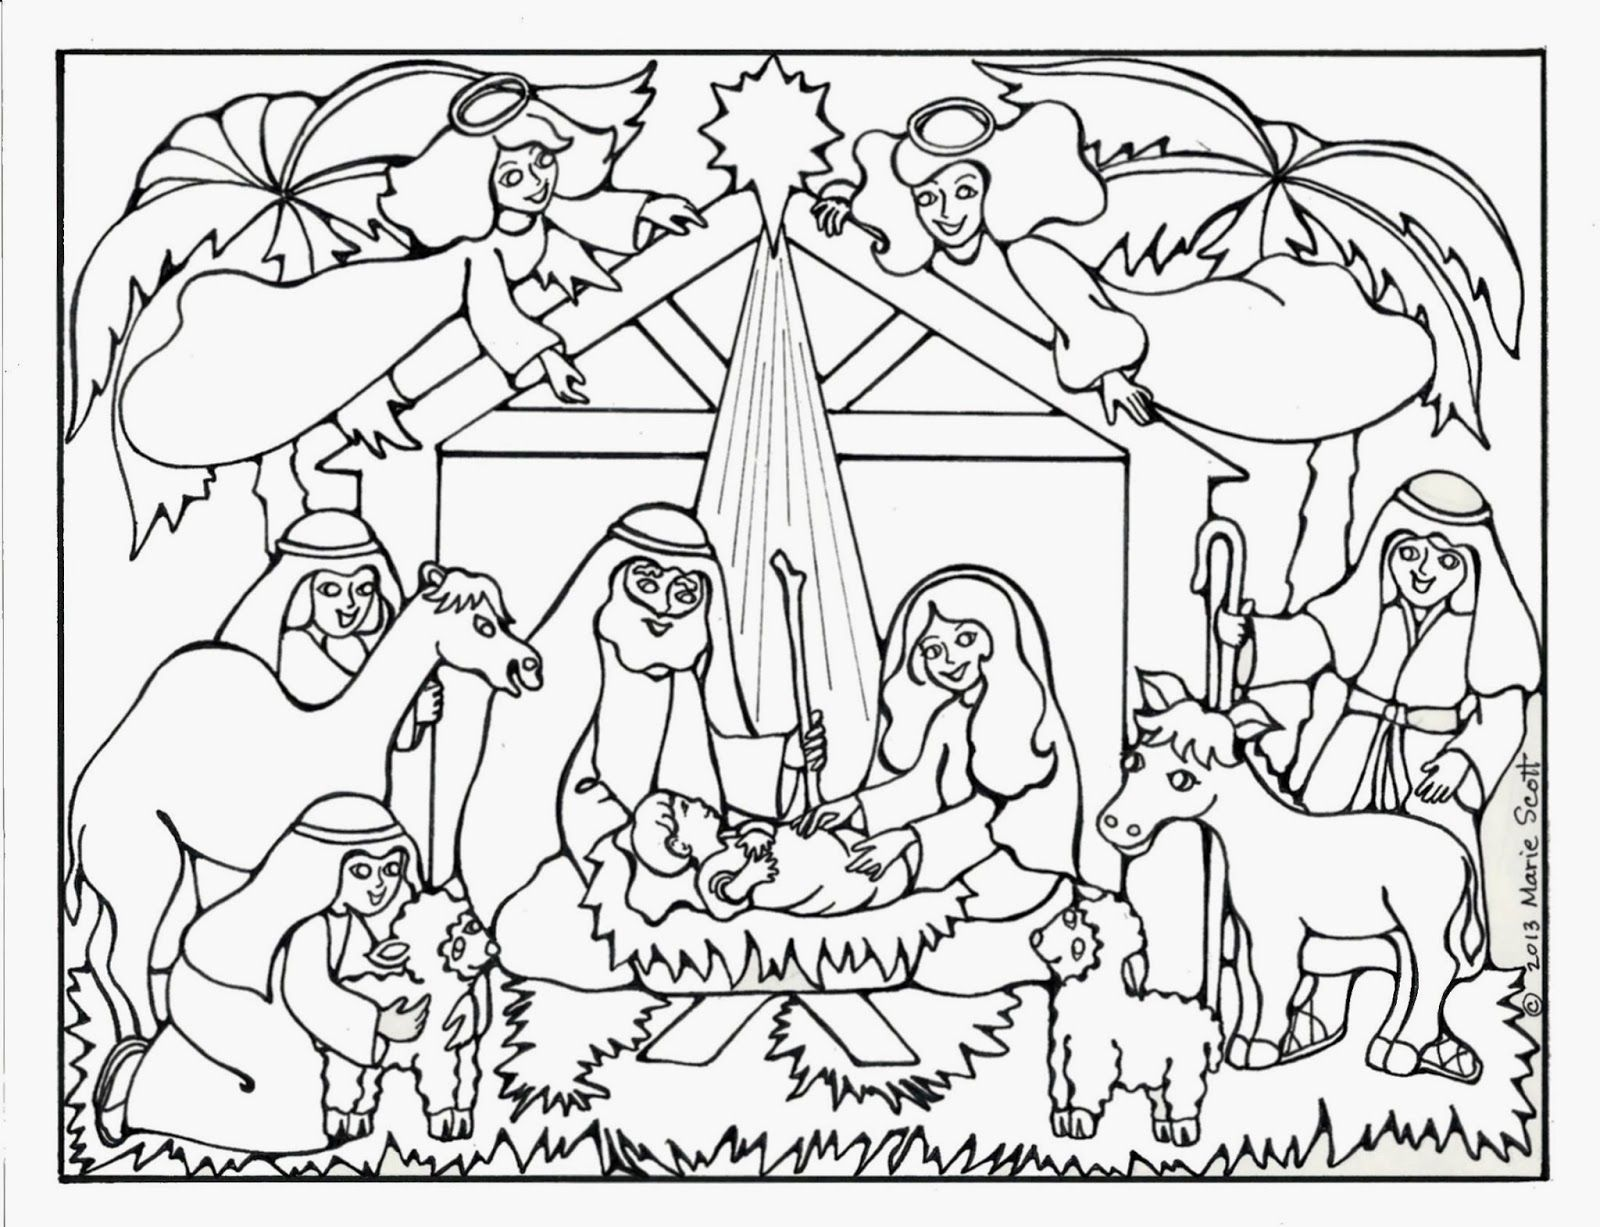 Born nativity coloring page is free download printable coloring pages - Baby Jesus Coloring Pages To Print Coloring Pages For All Ages